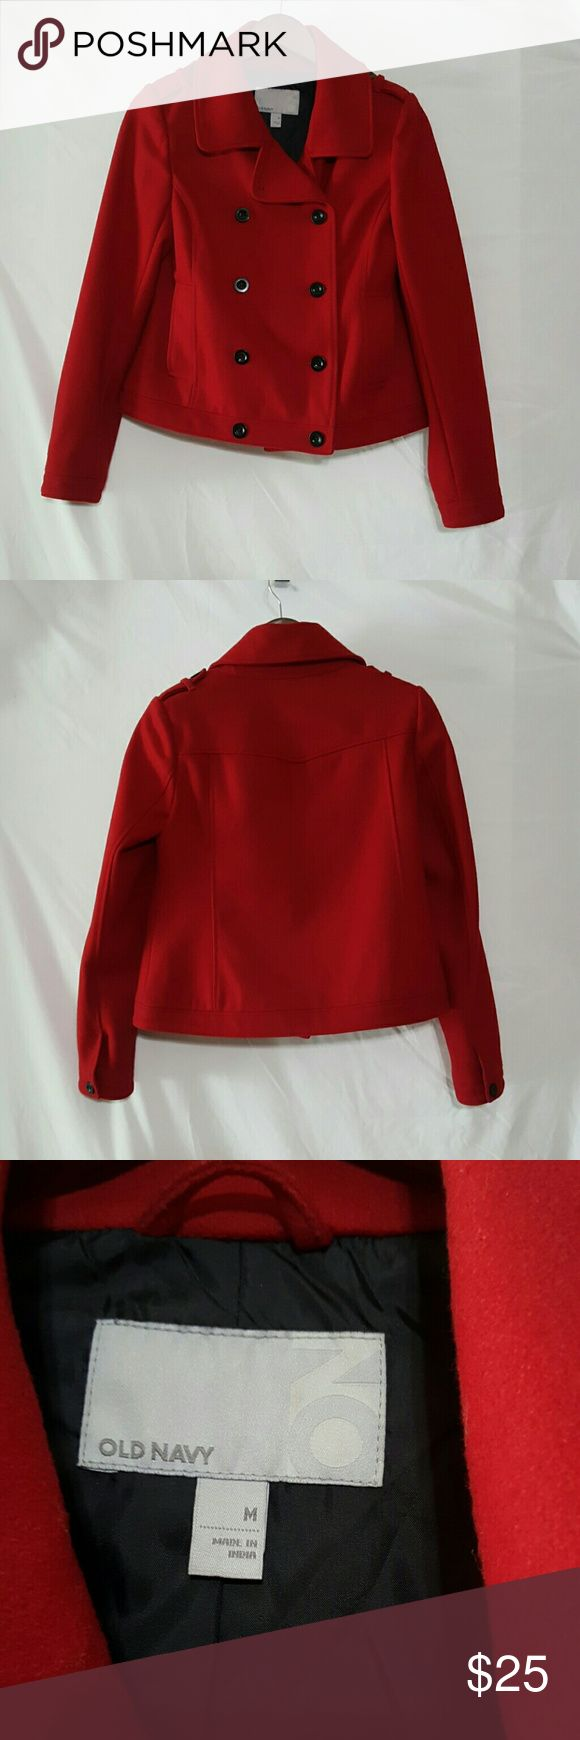 """🌻Summer Sale Red Pea Coat * length 21.5"""" * chest 19""""  Excellent used condition, worn twice. Super cute with black slacks or dress up any outfit with this beautiful red 70%wool /30% nylon jacket. Comes from a smoke free home.   Special summer price 🍍  Any reasonable offer will be considered. Old Navy Jackets & Coats Pea Coats"""